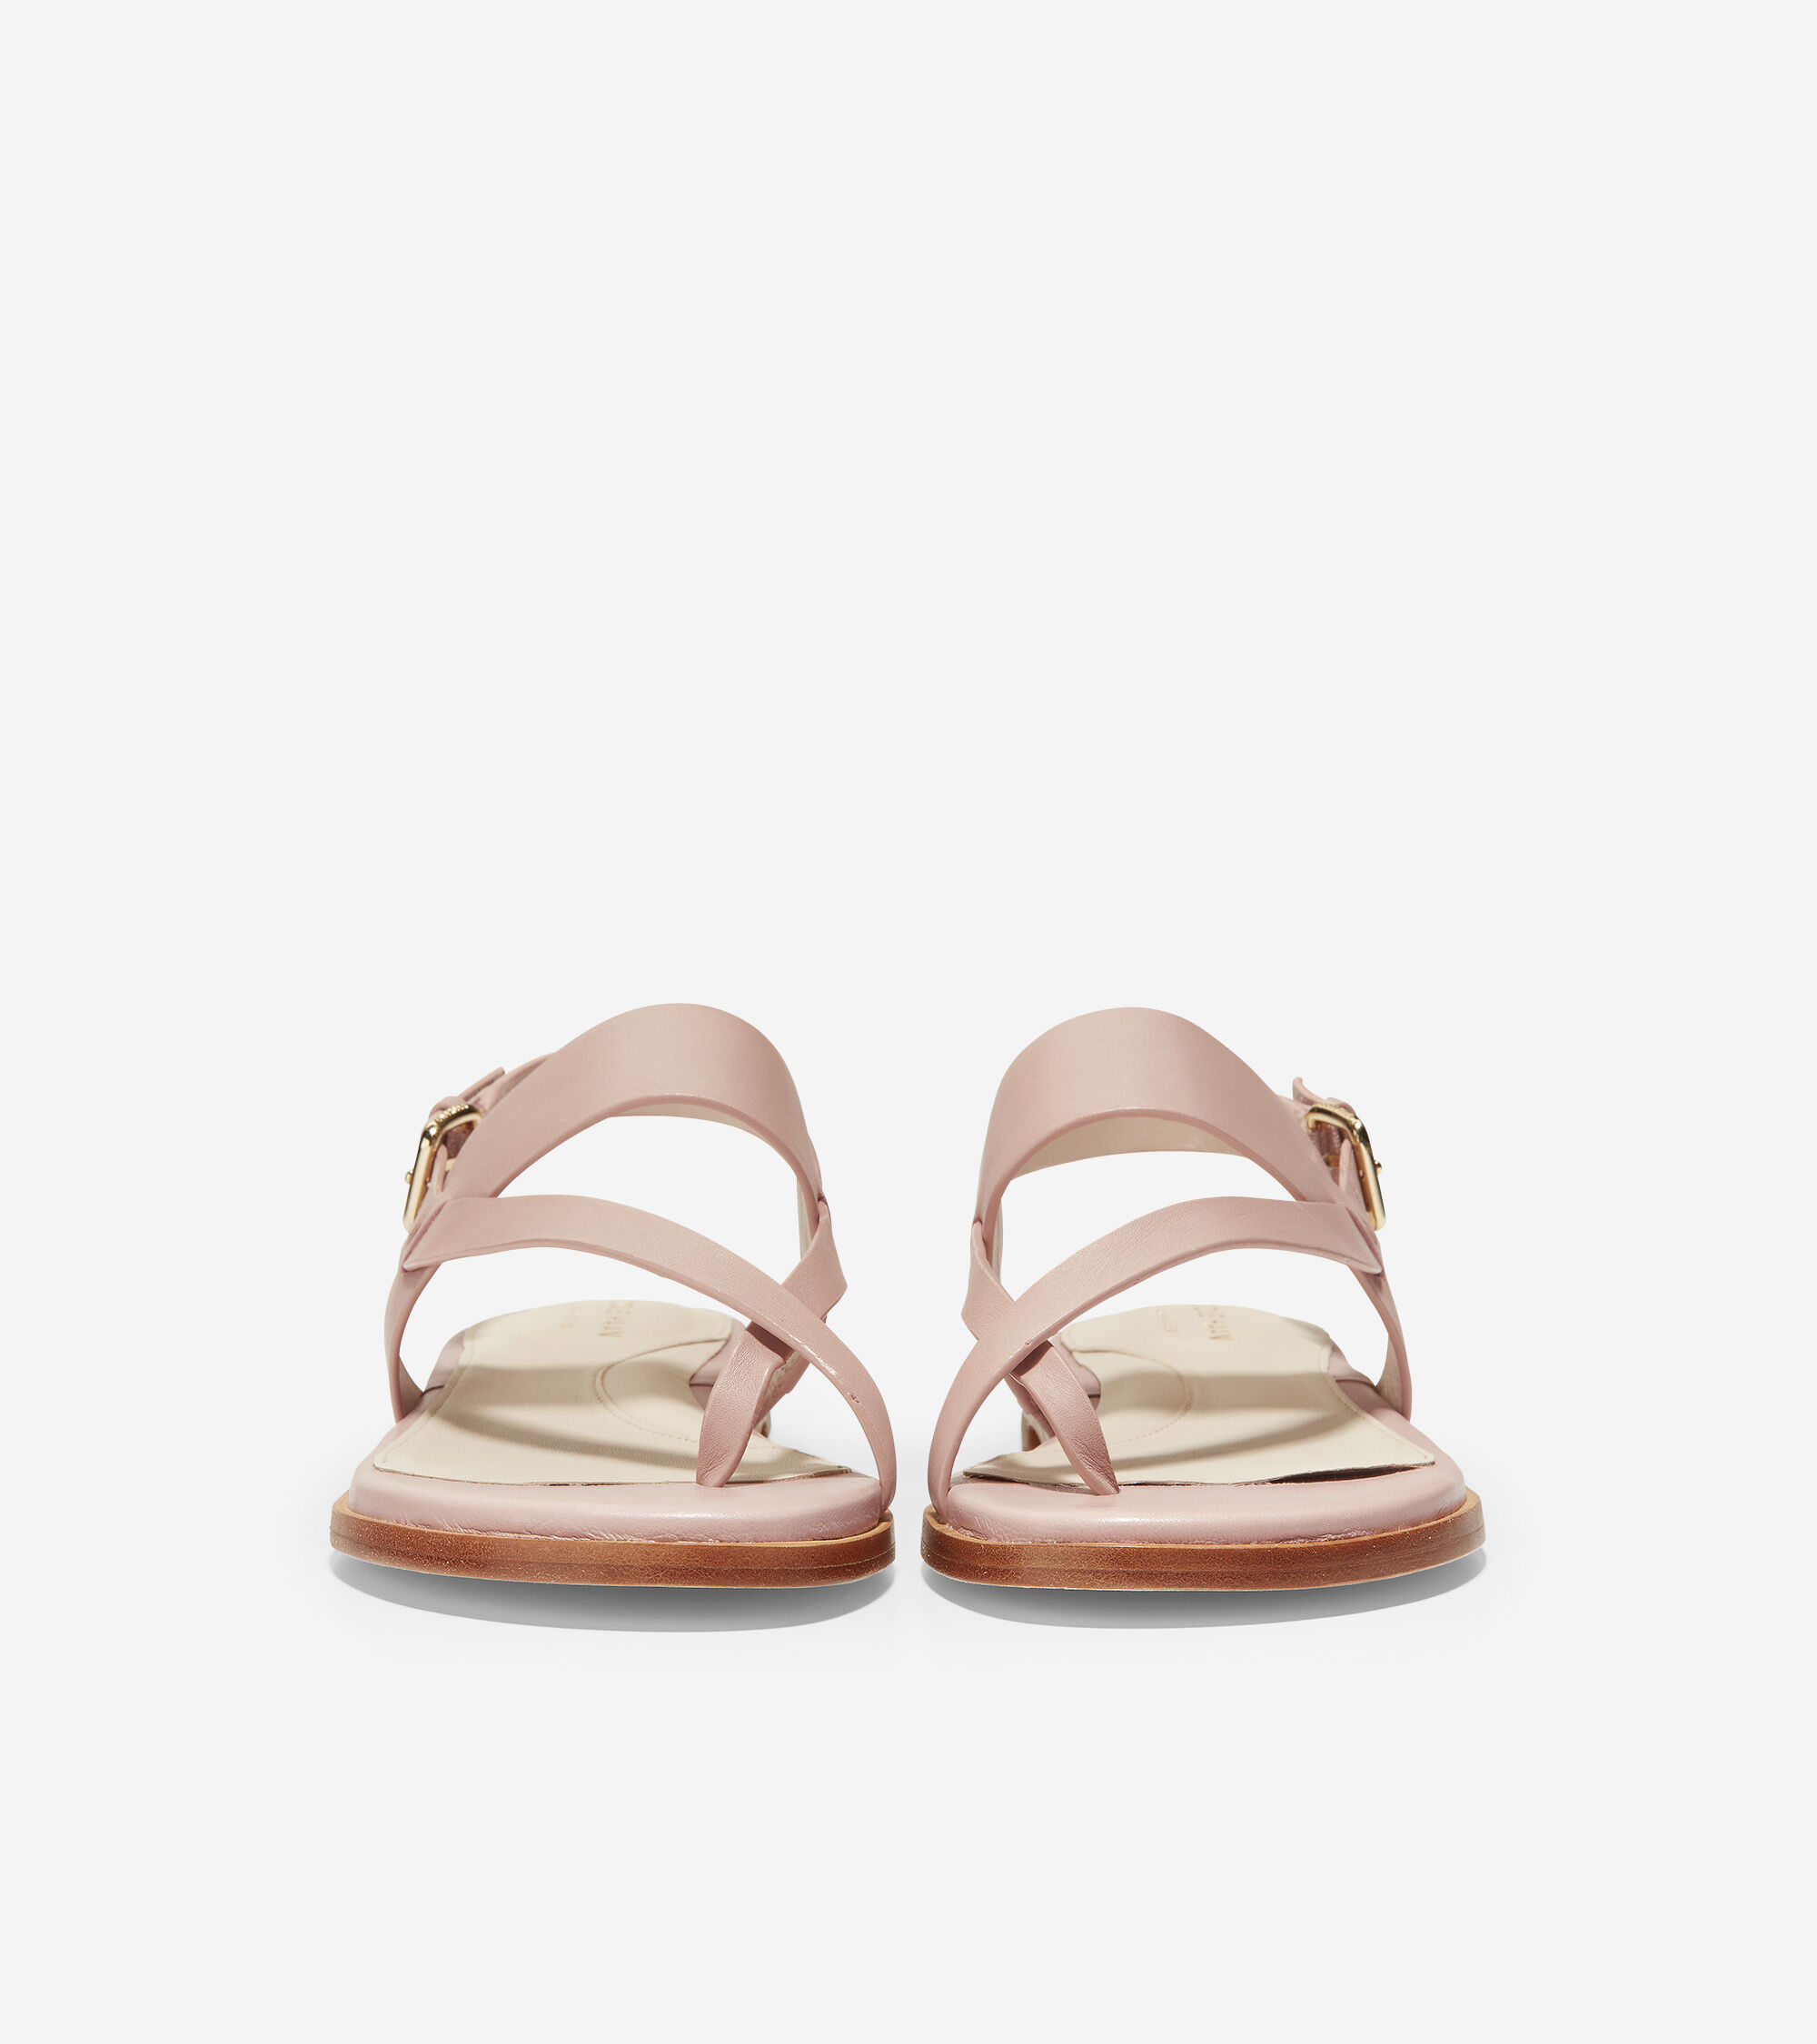 89b4acda628e5a Women s Anica Thong Sandals in Misty Rose